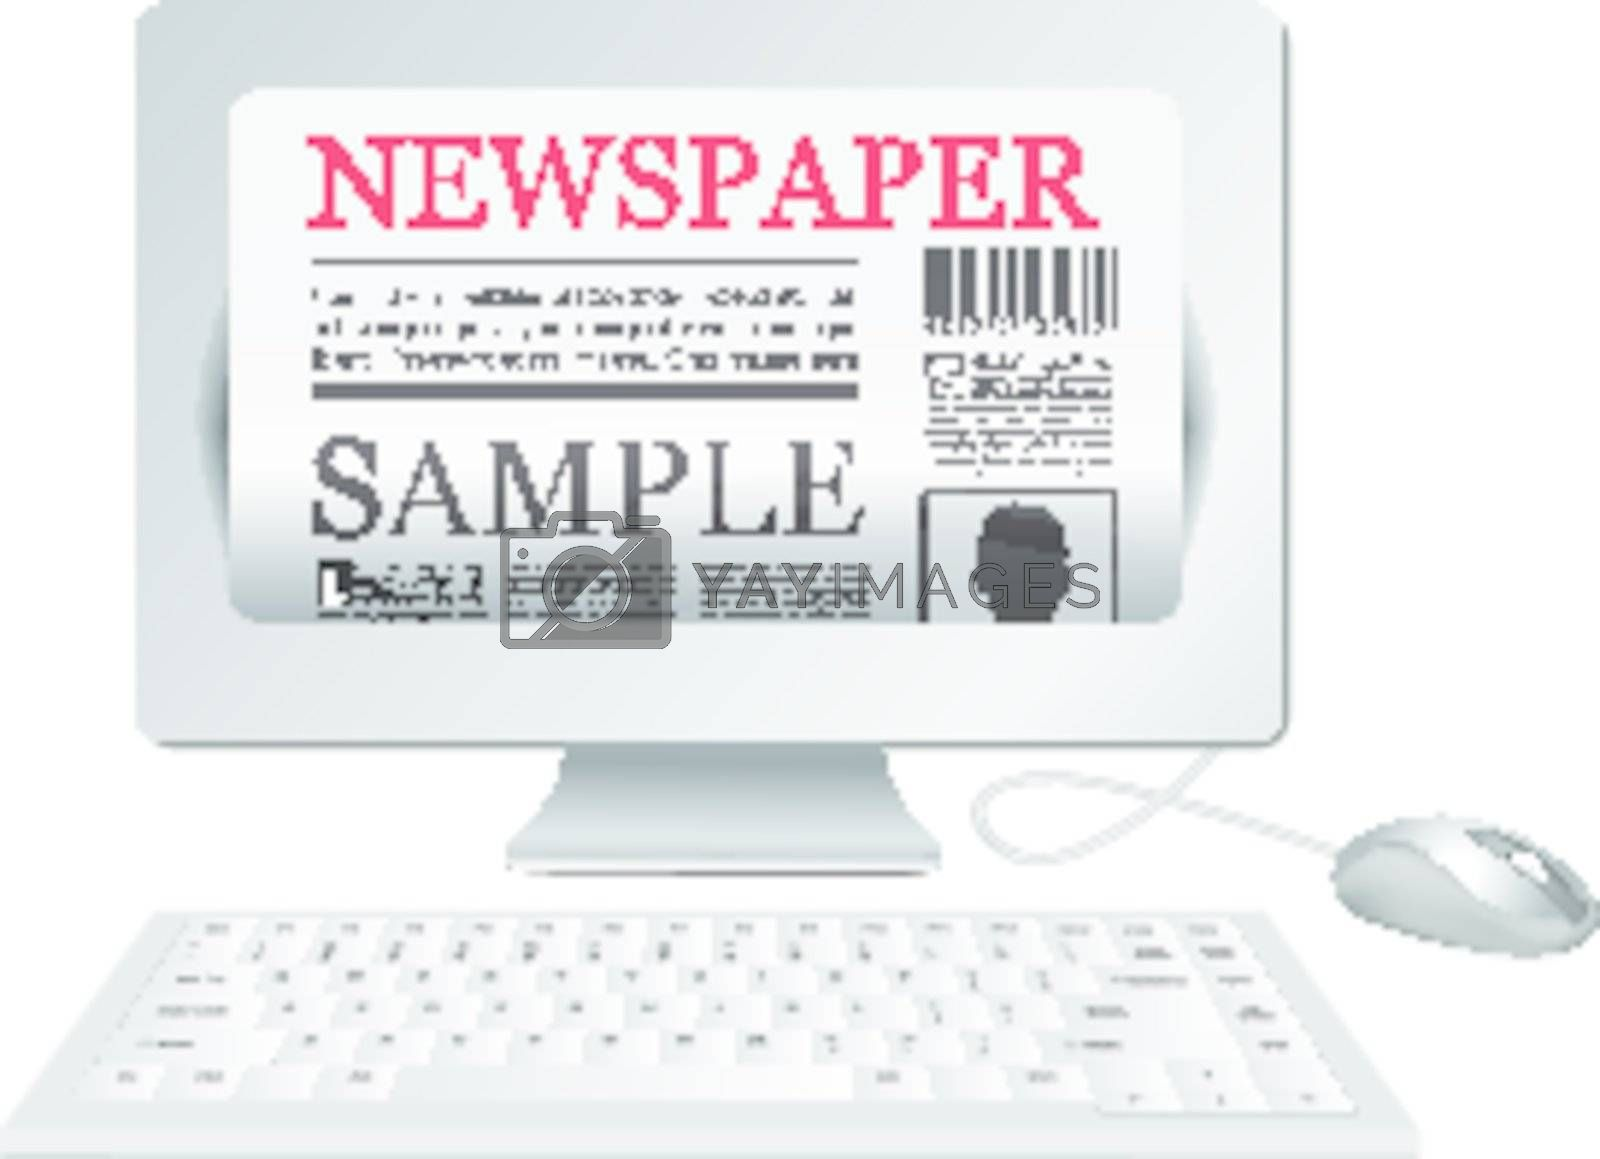 Online newspaper. Computer and news website on white